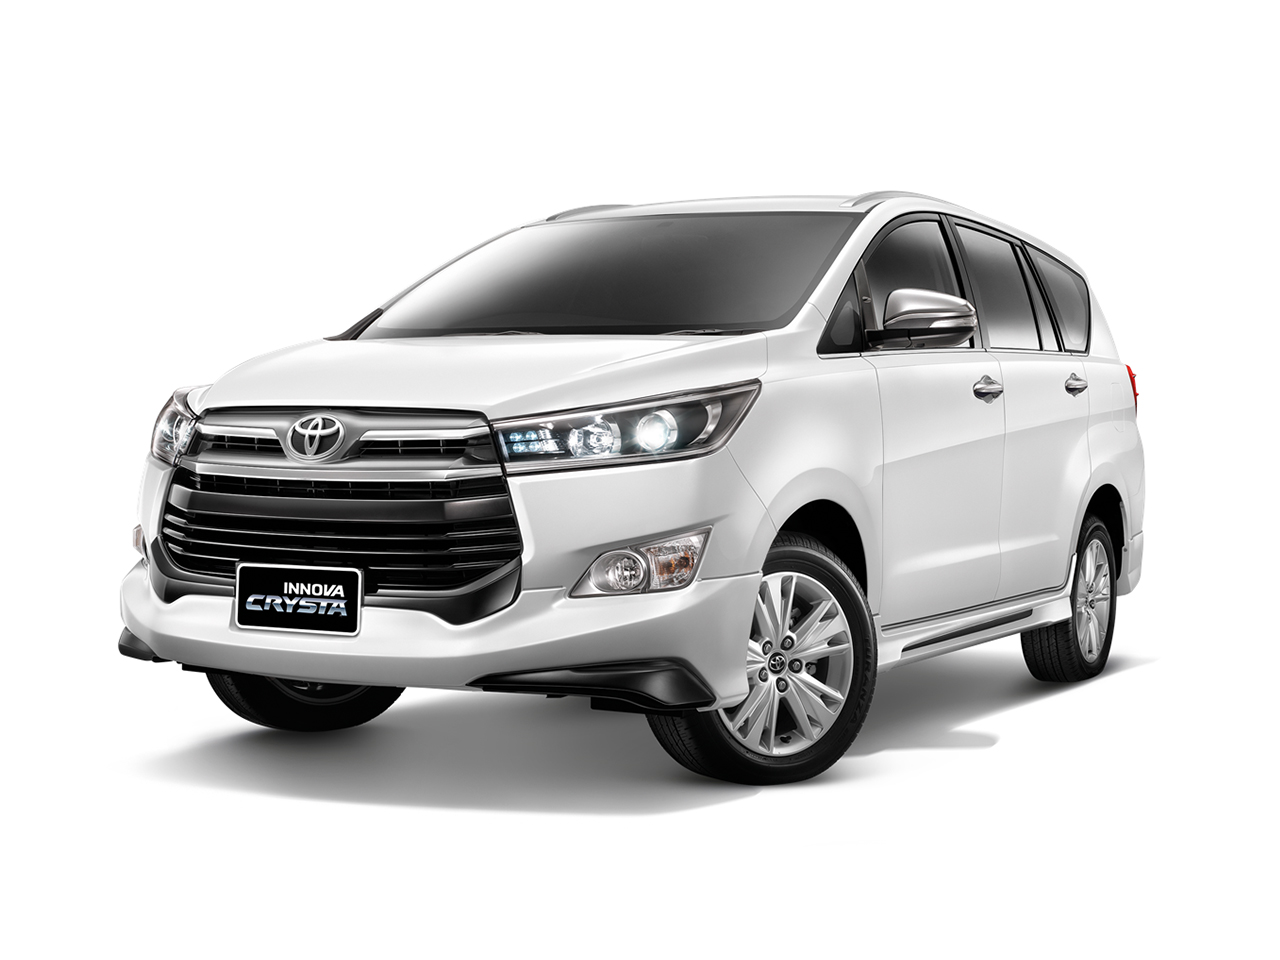 all new toyota kijang innova 2018 oli matic grand avanza prices in bahrain gulf specs and reviews